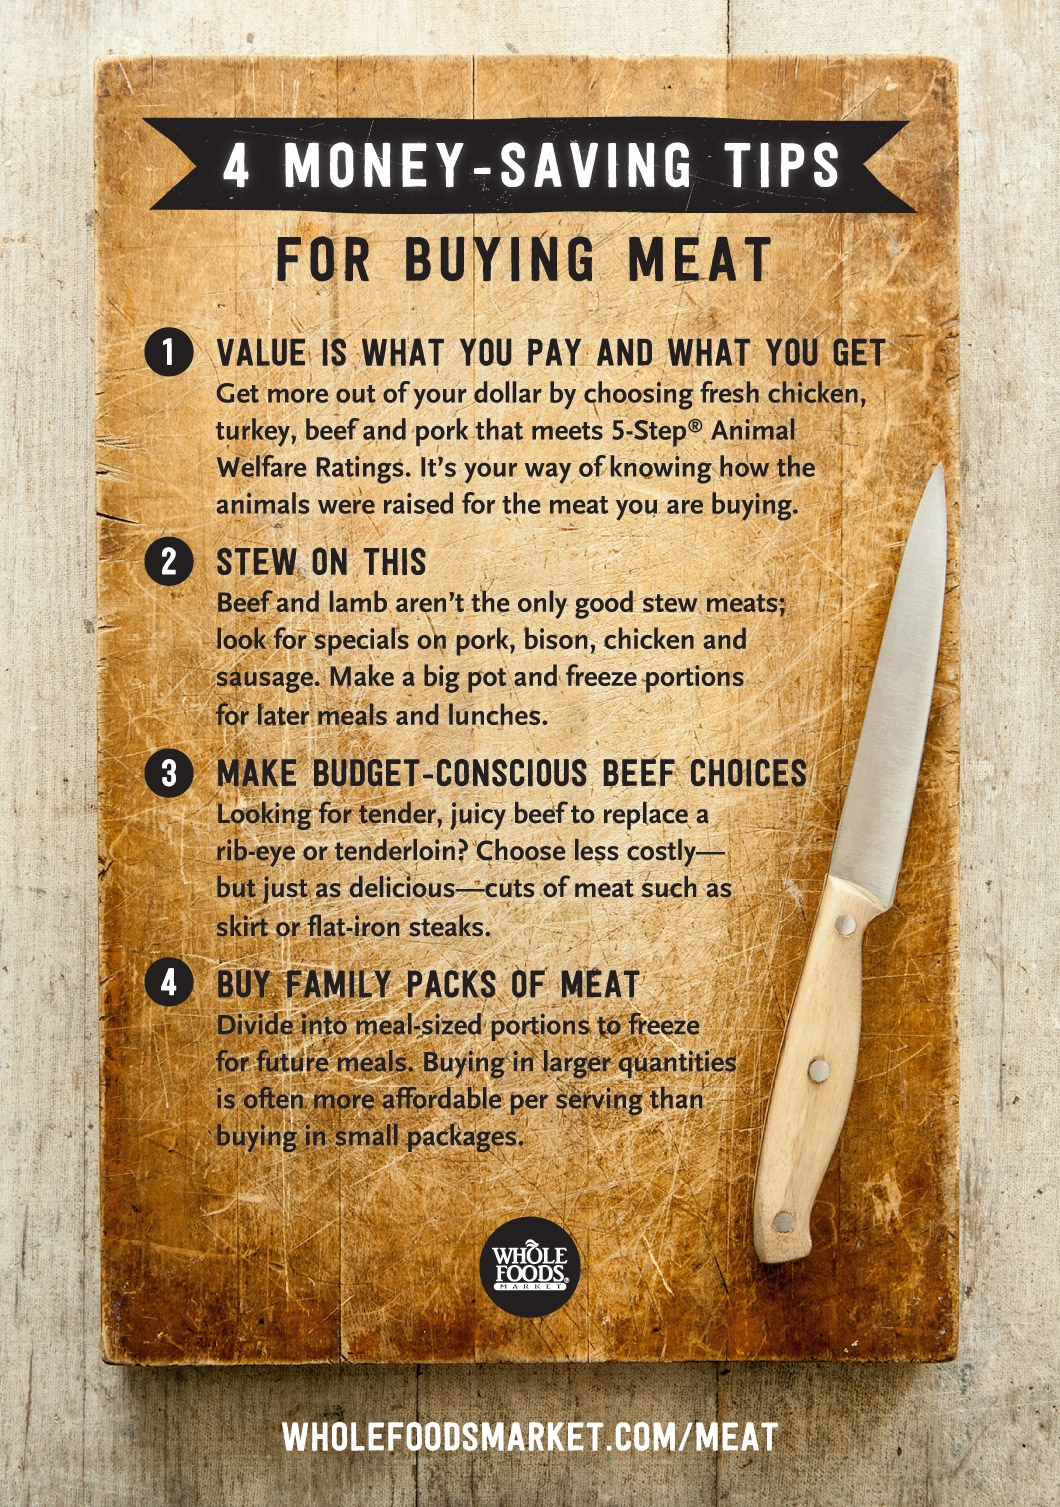 Money Saving Tips For Meat Whole Foods Market